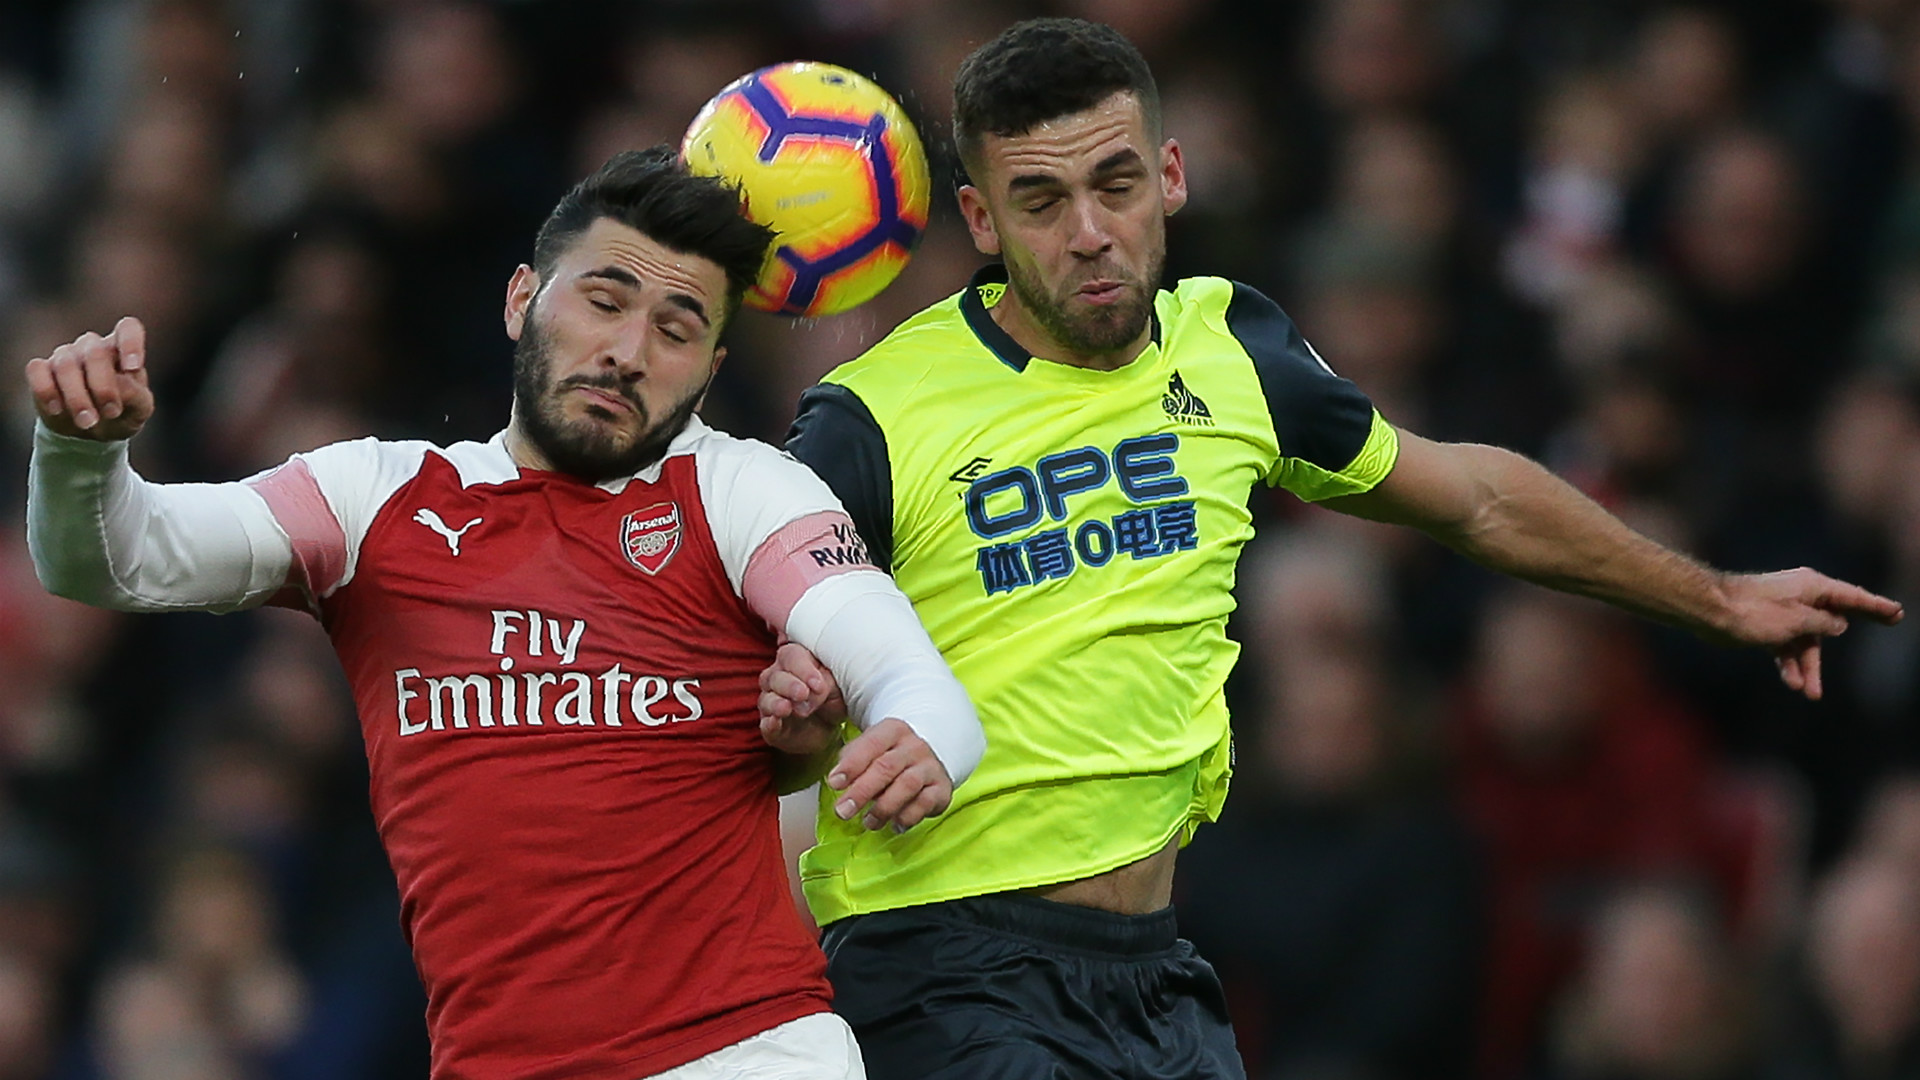 Sead Kolasinac Tommy Smith Arsenal Huddersfield 2018